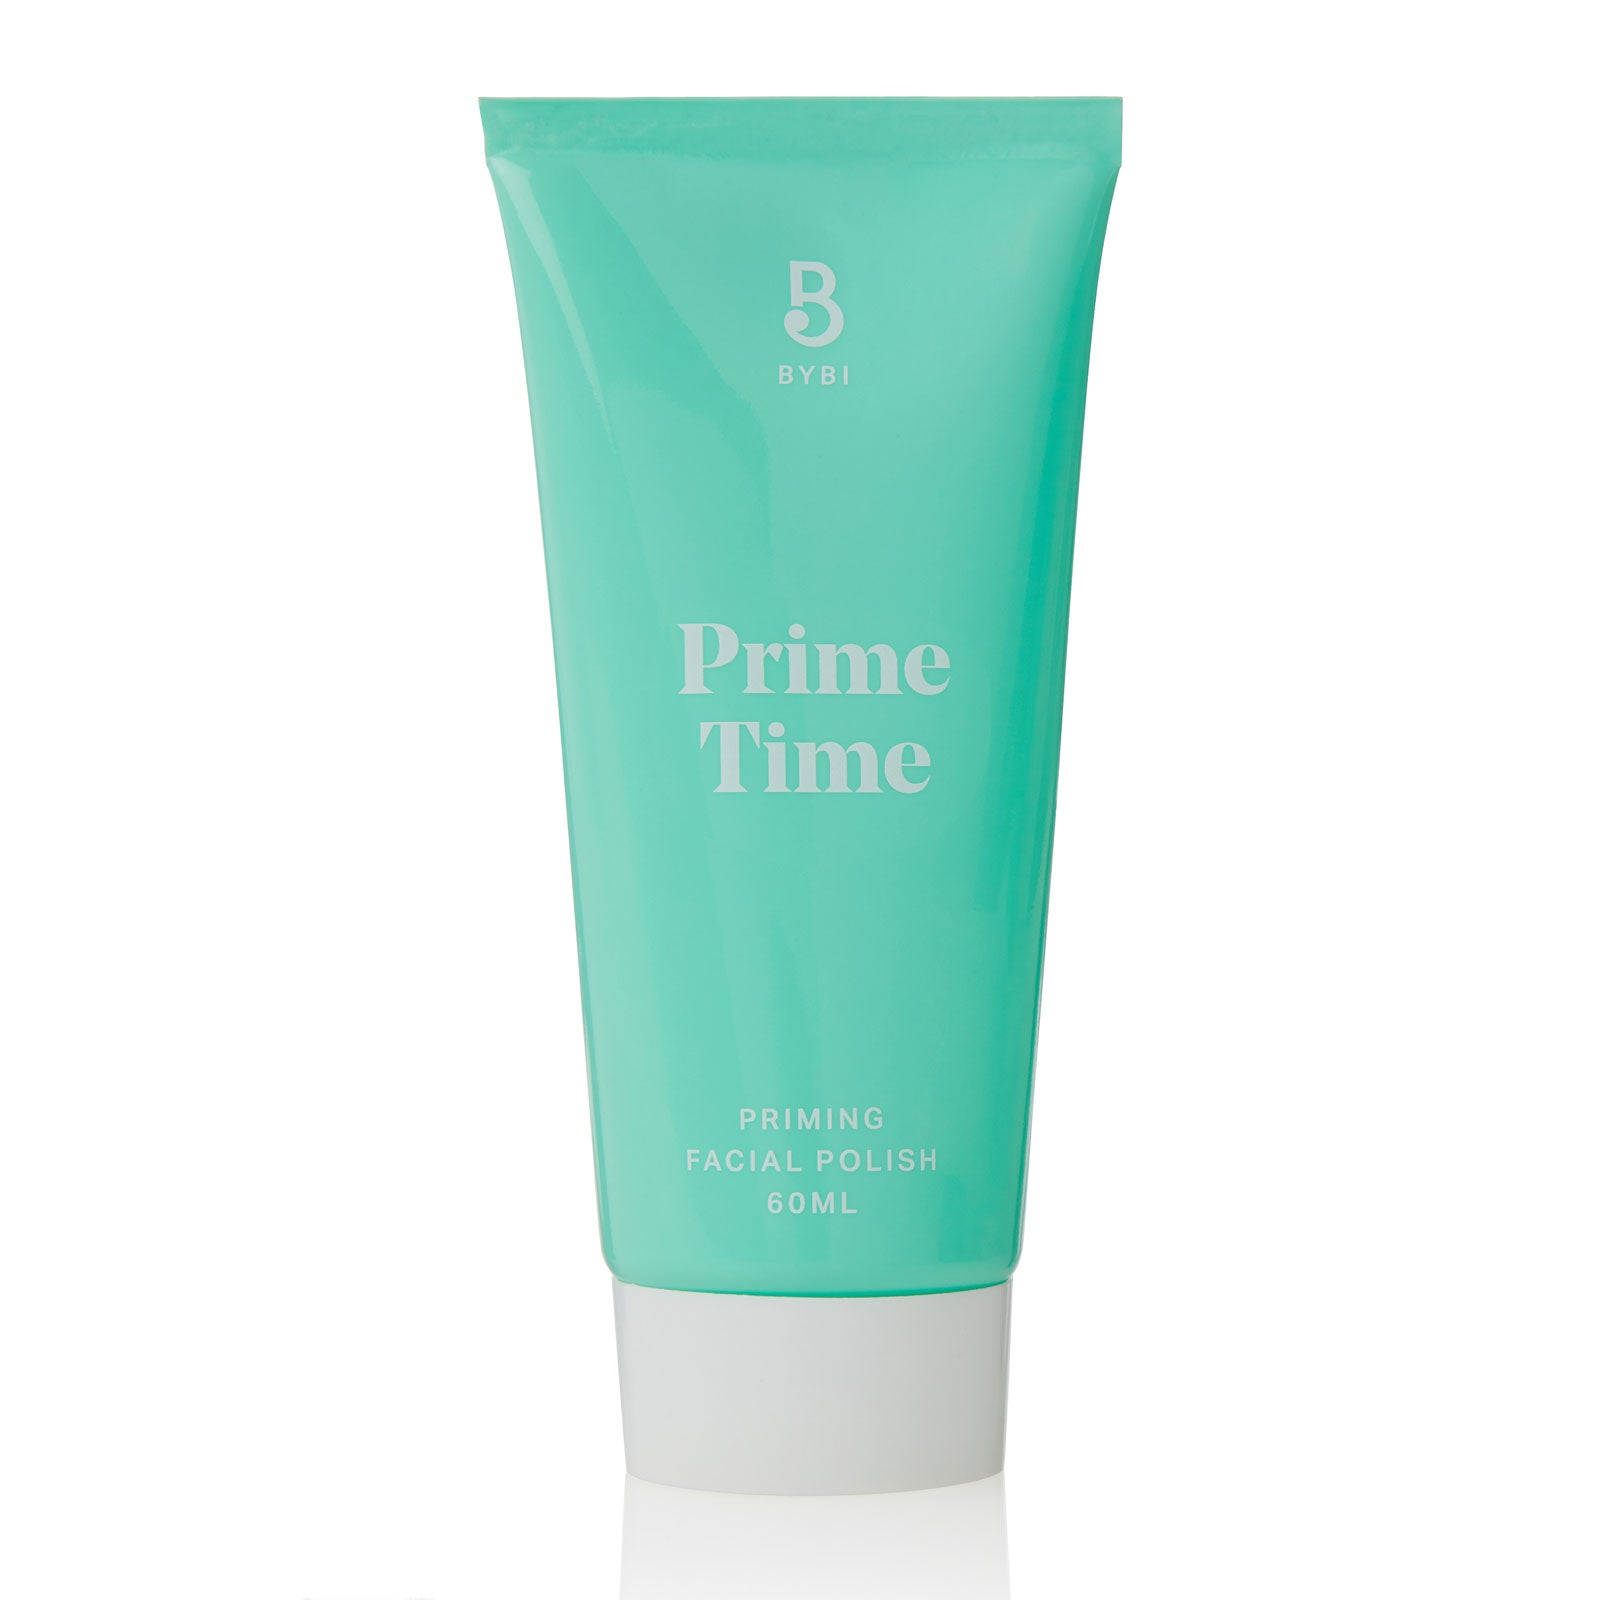 BYBI Beauty Prime Time Priming Facial Polish 60ml